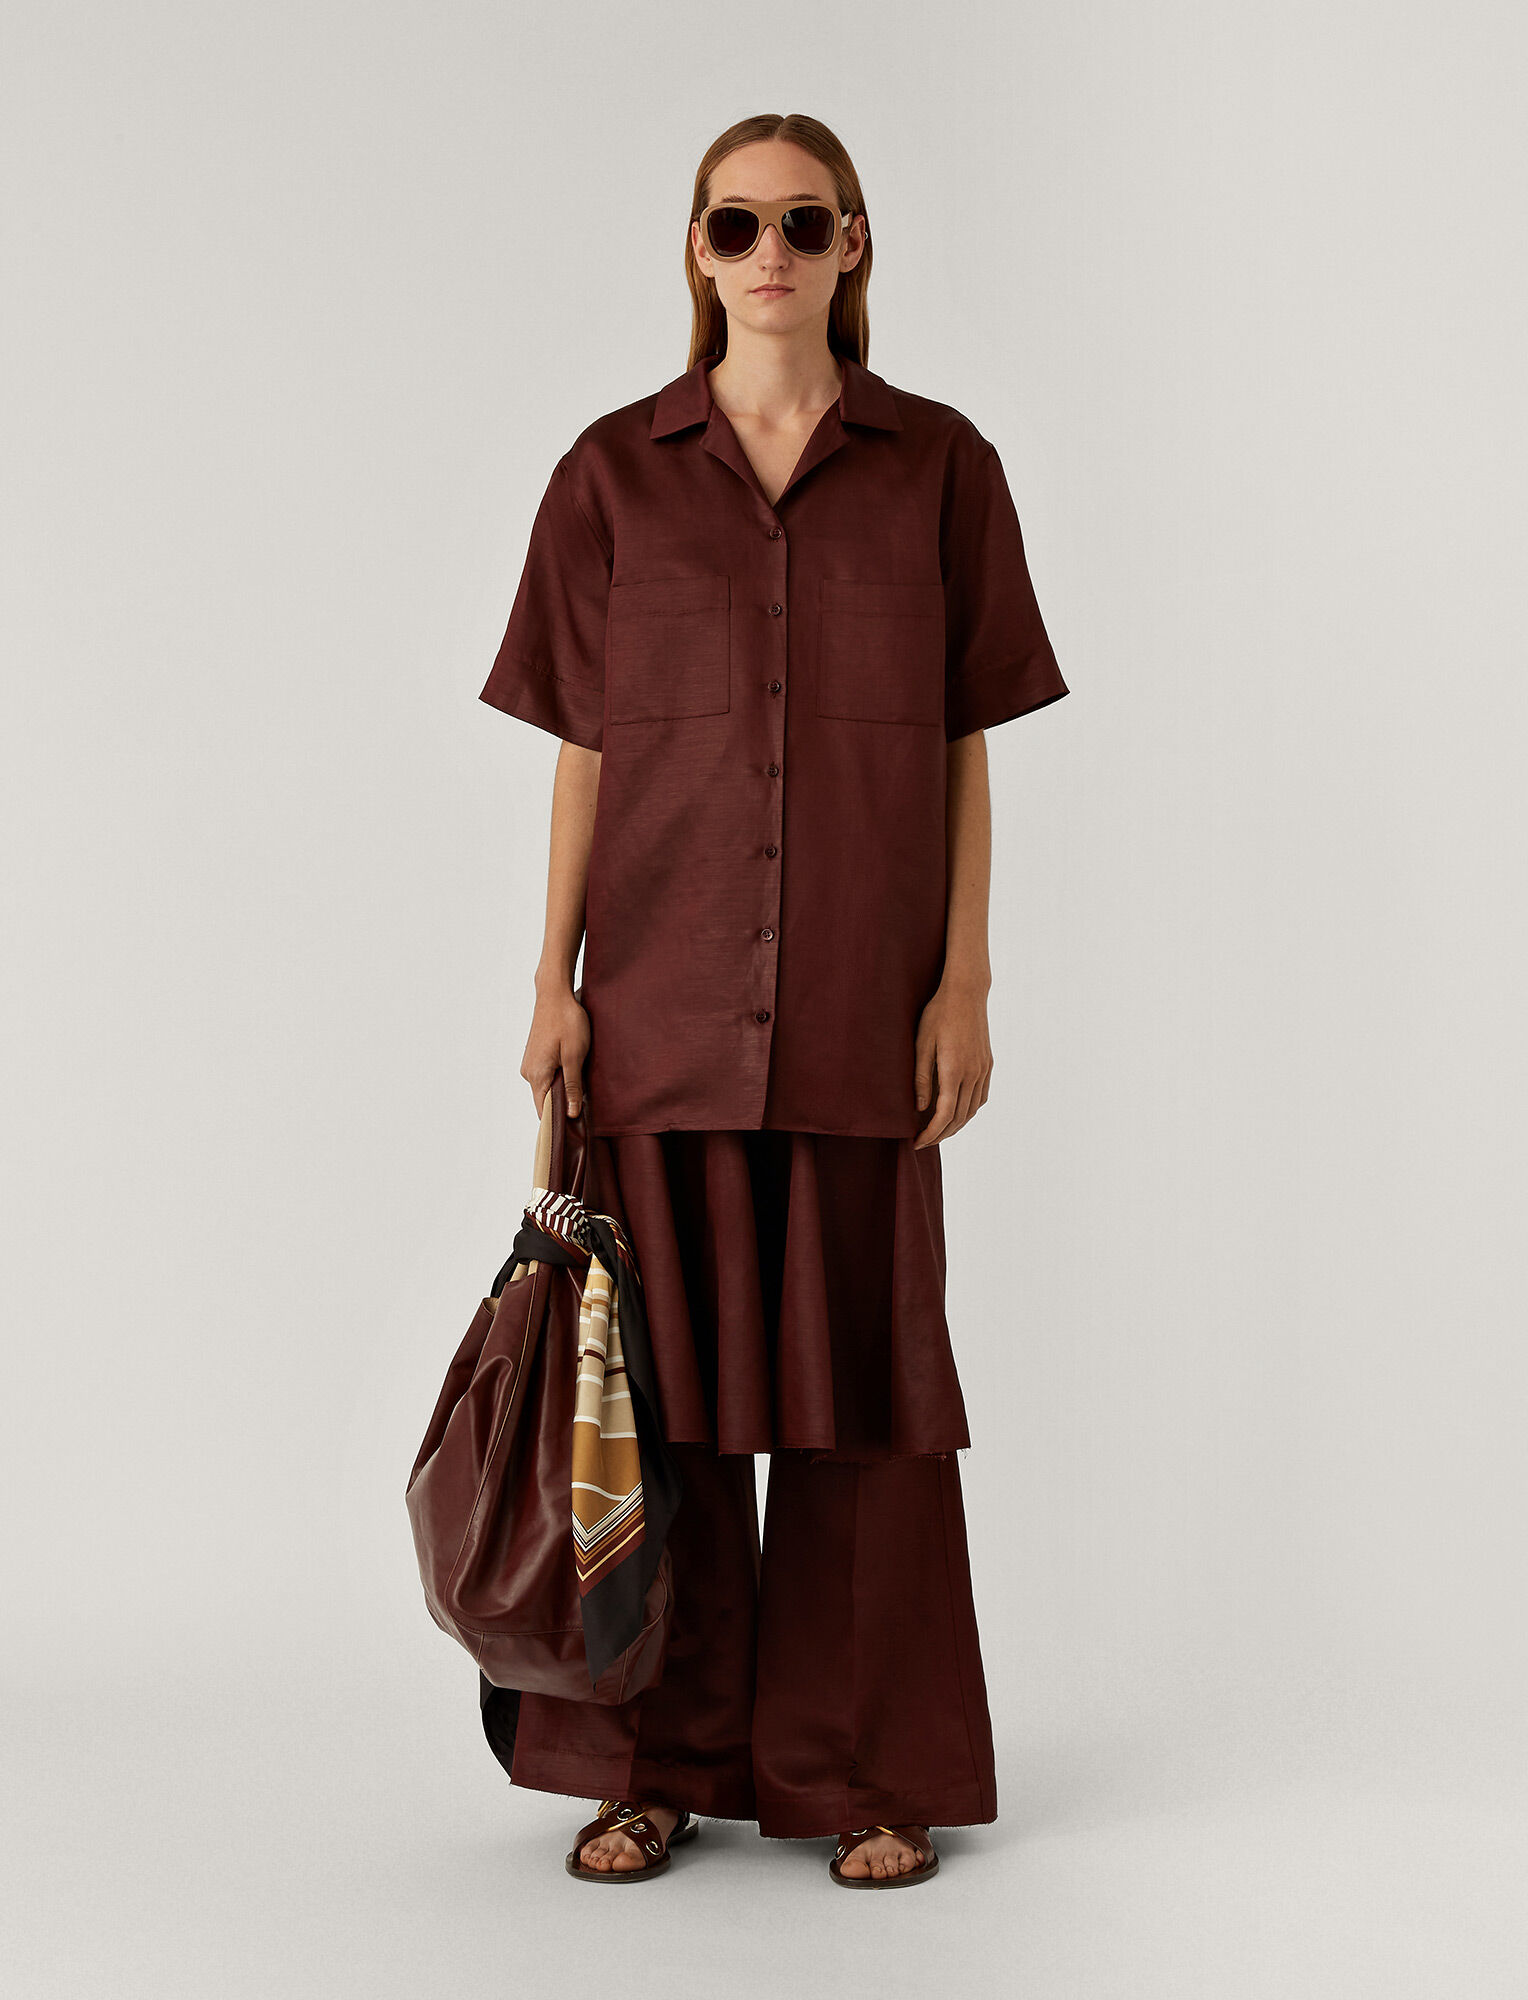 Joseph, Brani Chintaz Shirt, in MERLOT